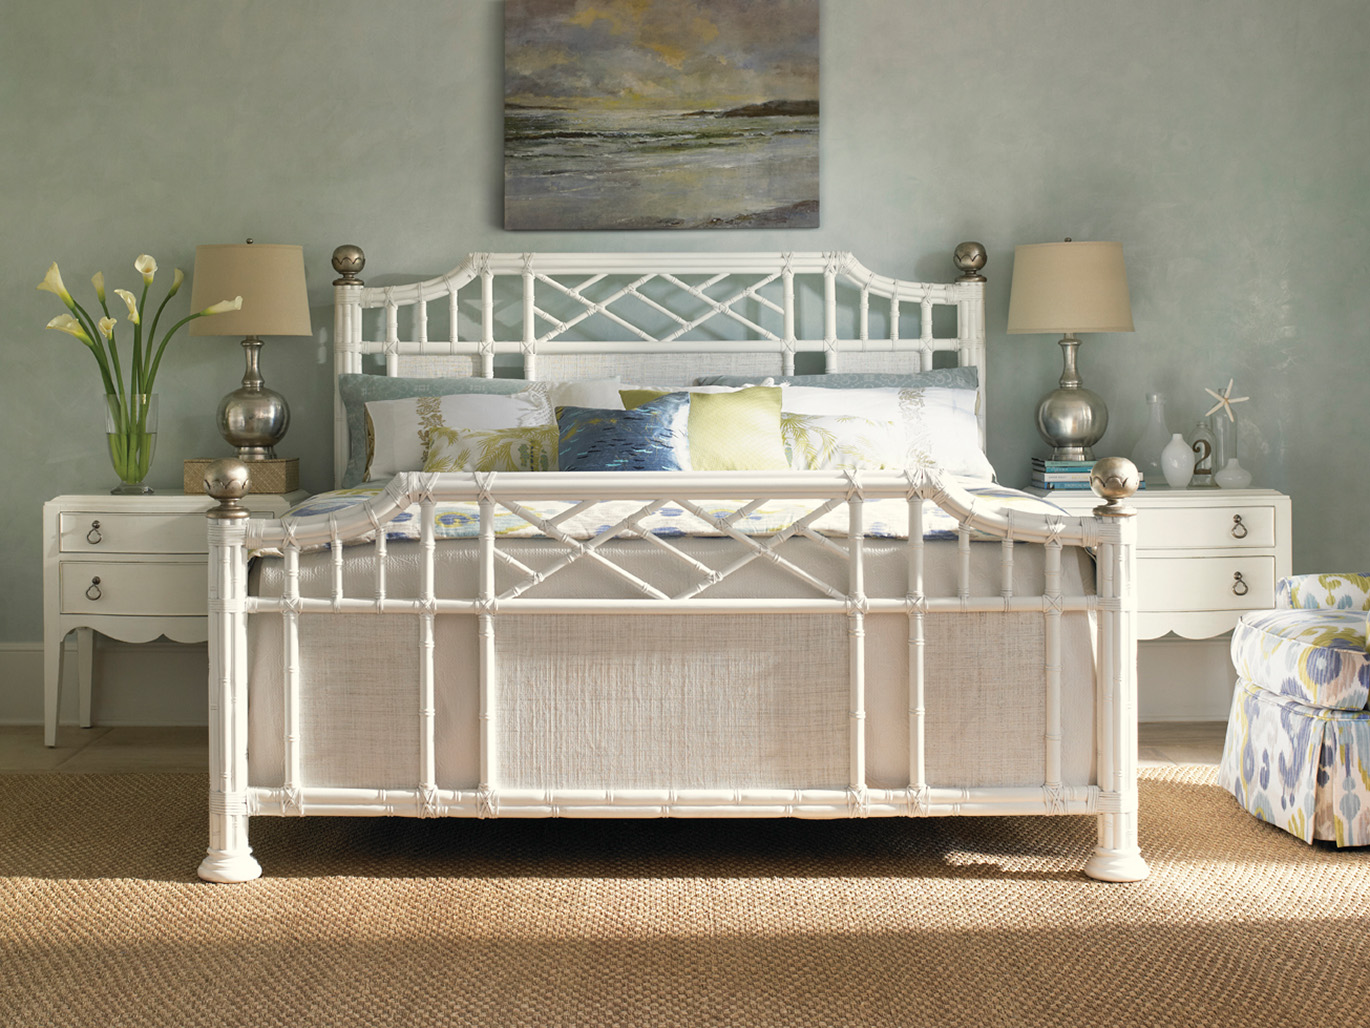 Tommy bahama furniture de - Tommy bahama bedroom furniture clearance ...